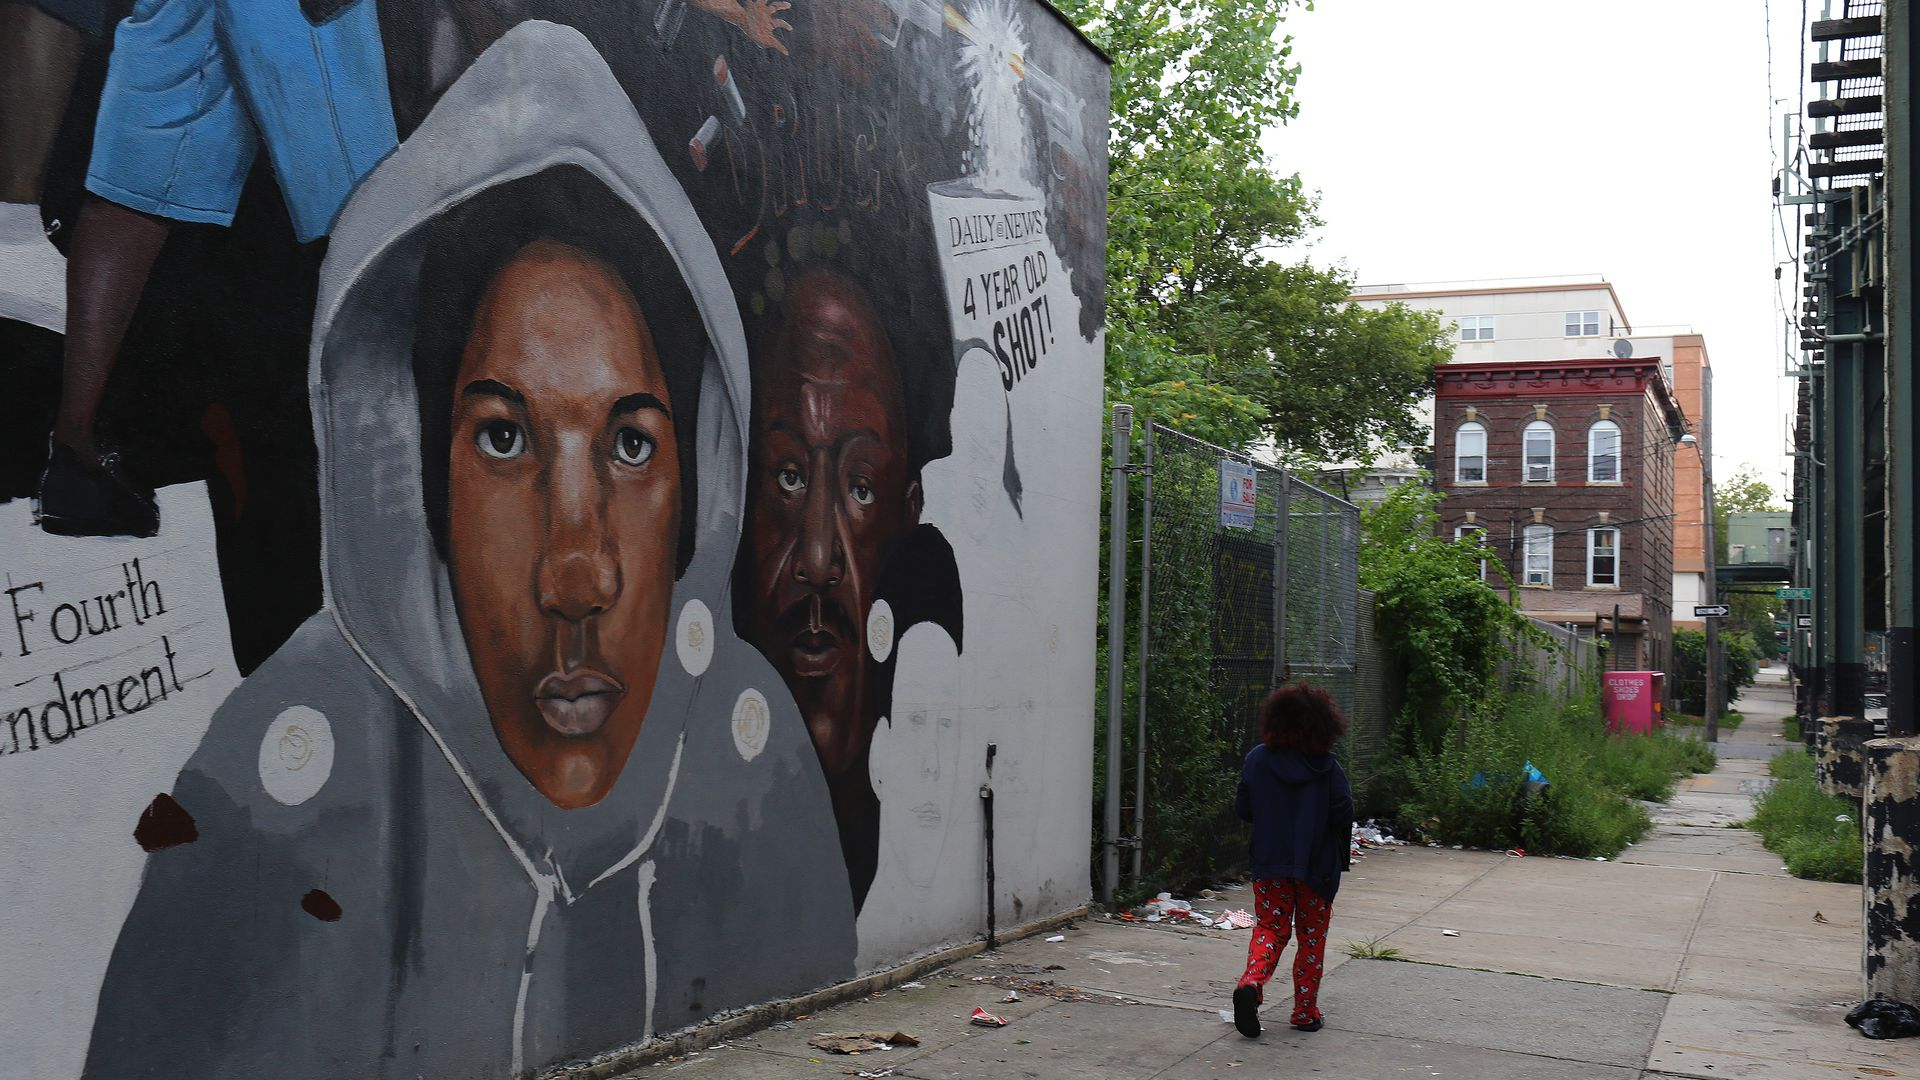 A Trayvon Martin mural in New York